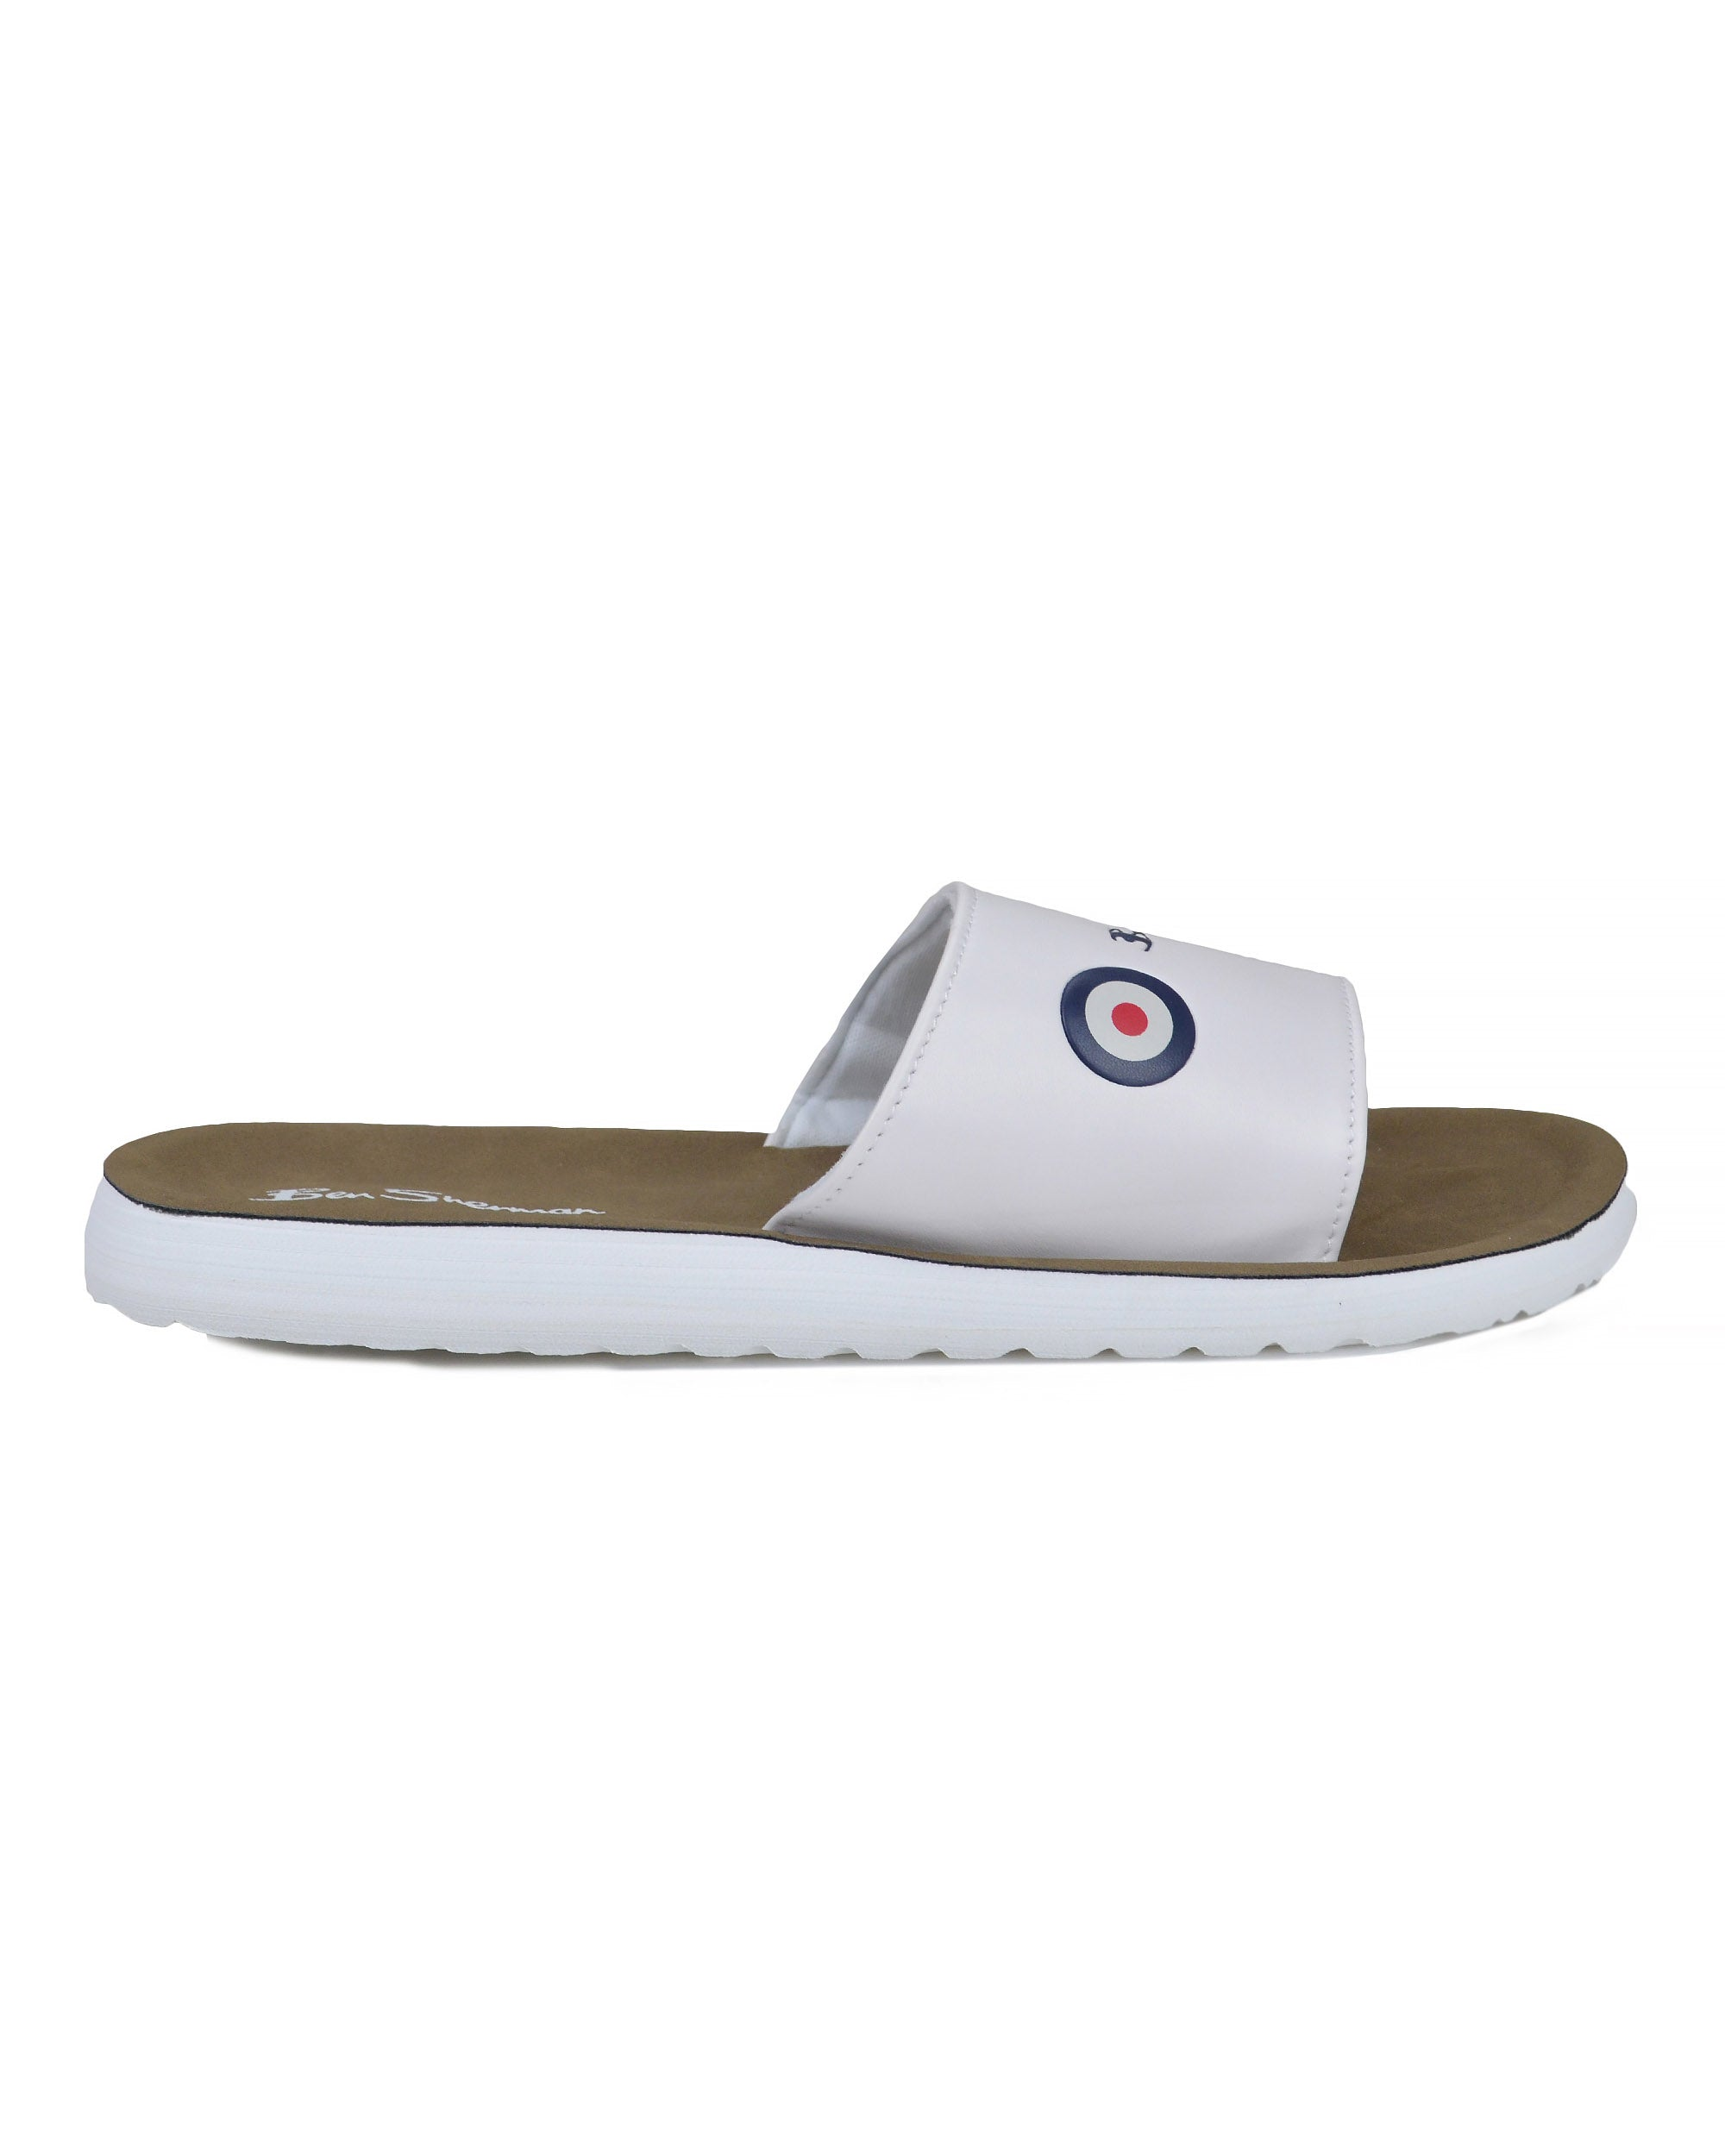 Daytona Cushioned Slide Sandals - White